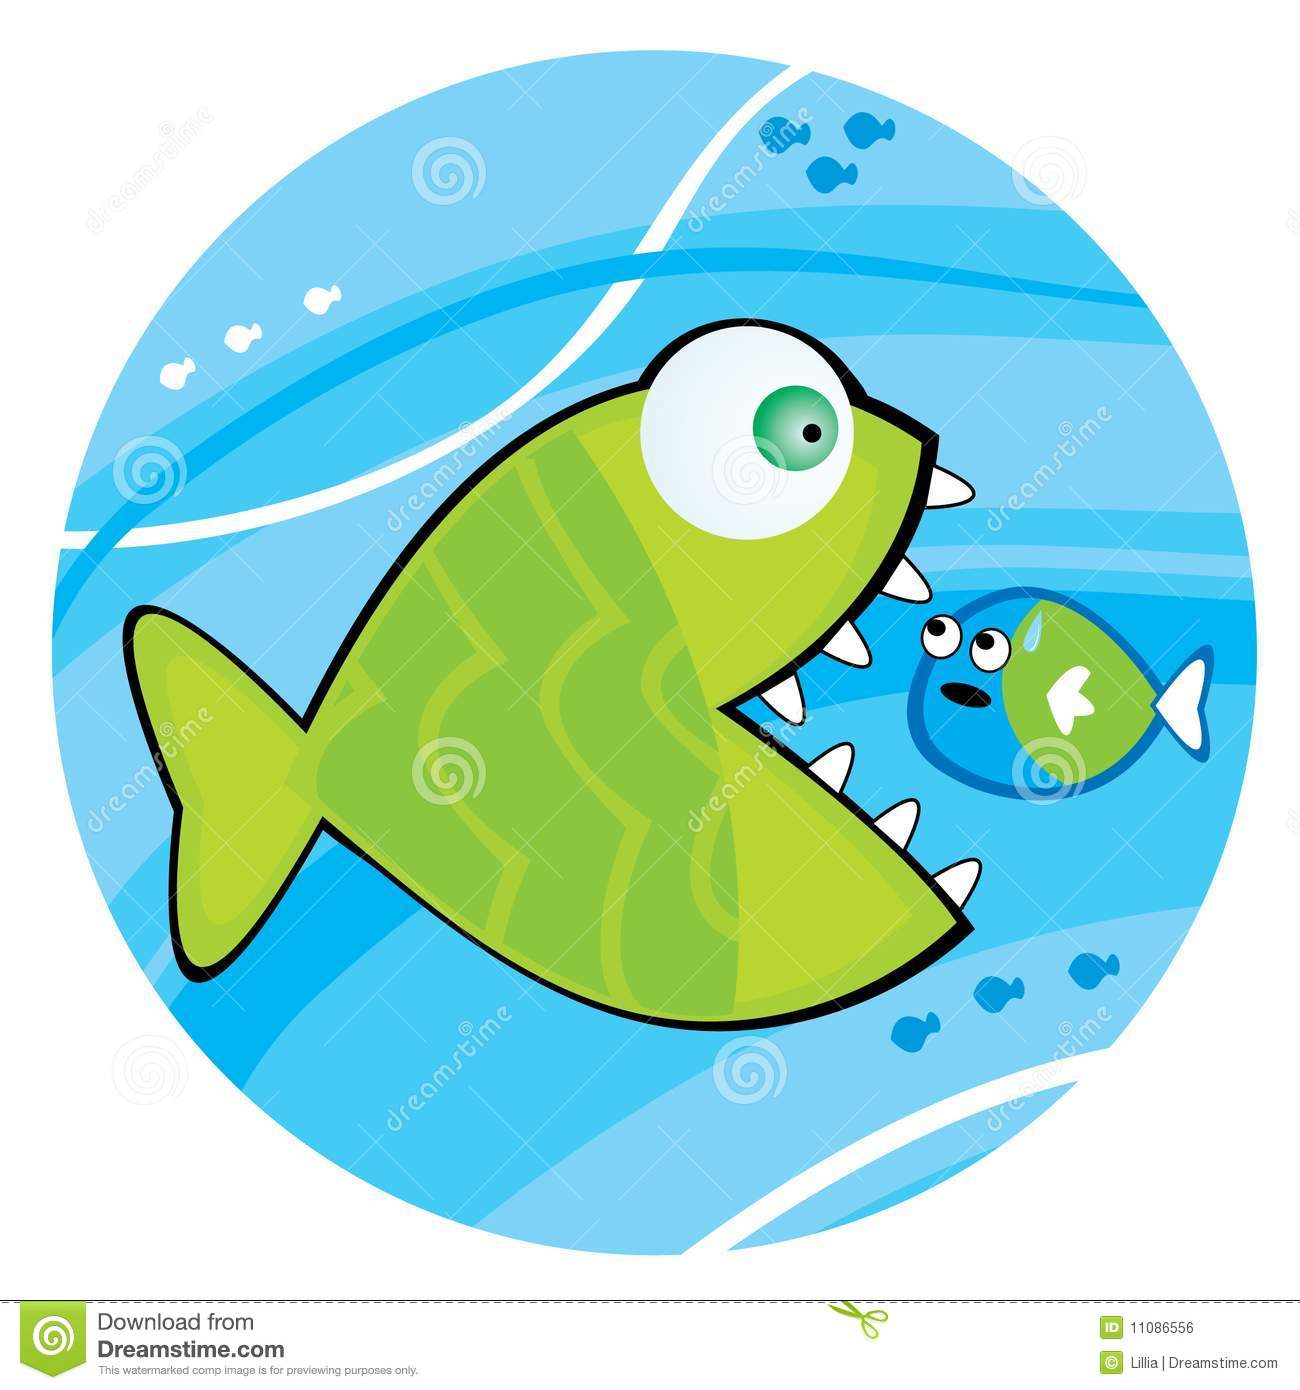 Big fish eating a little fish royalty free stock image for Big fish little fish